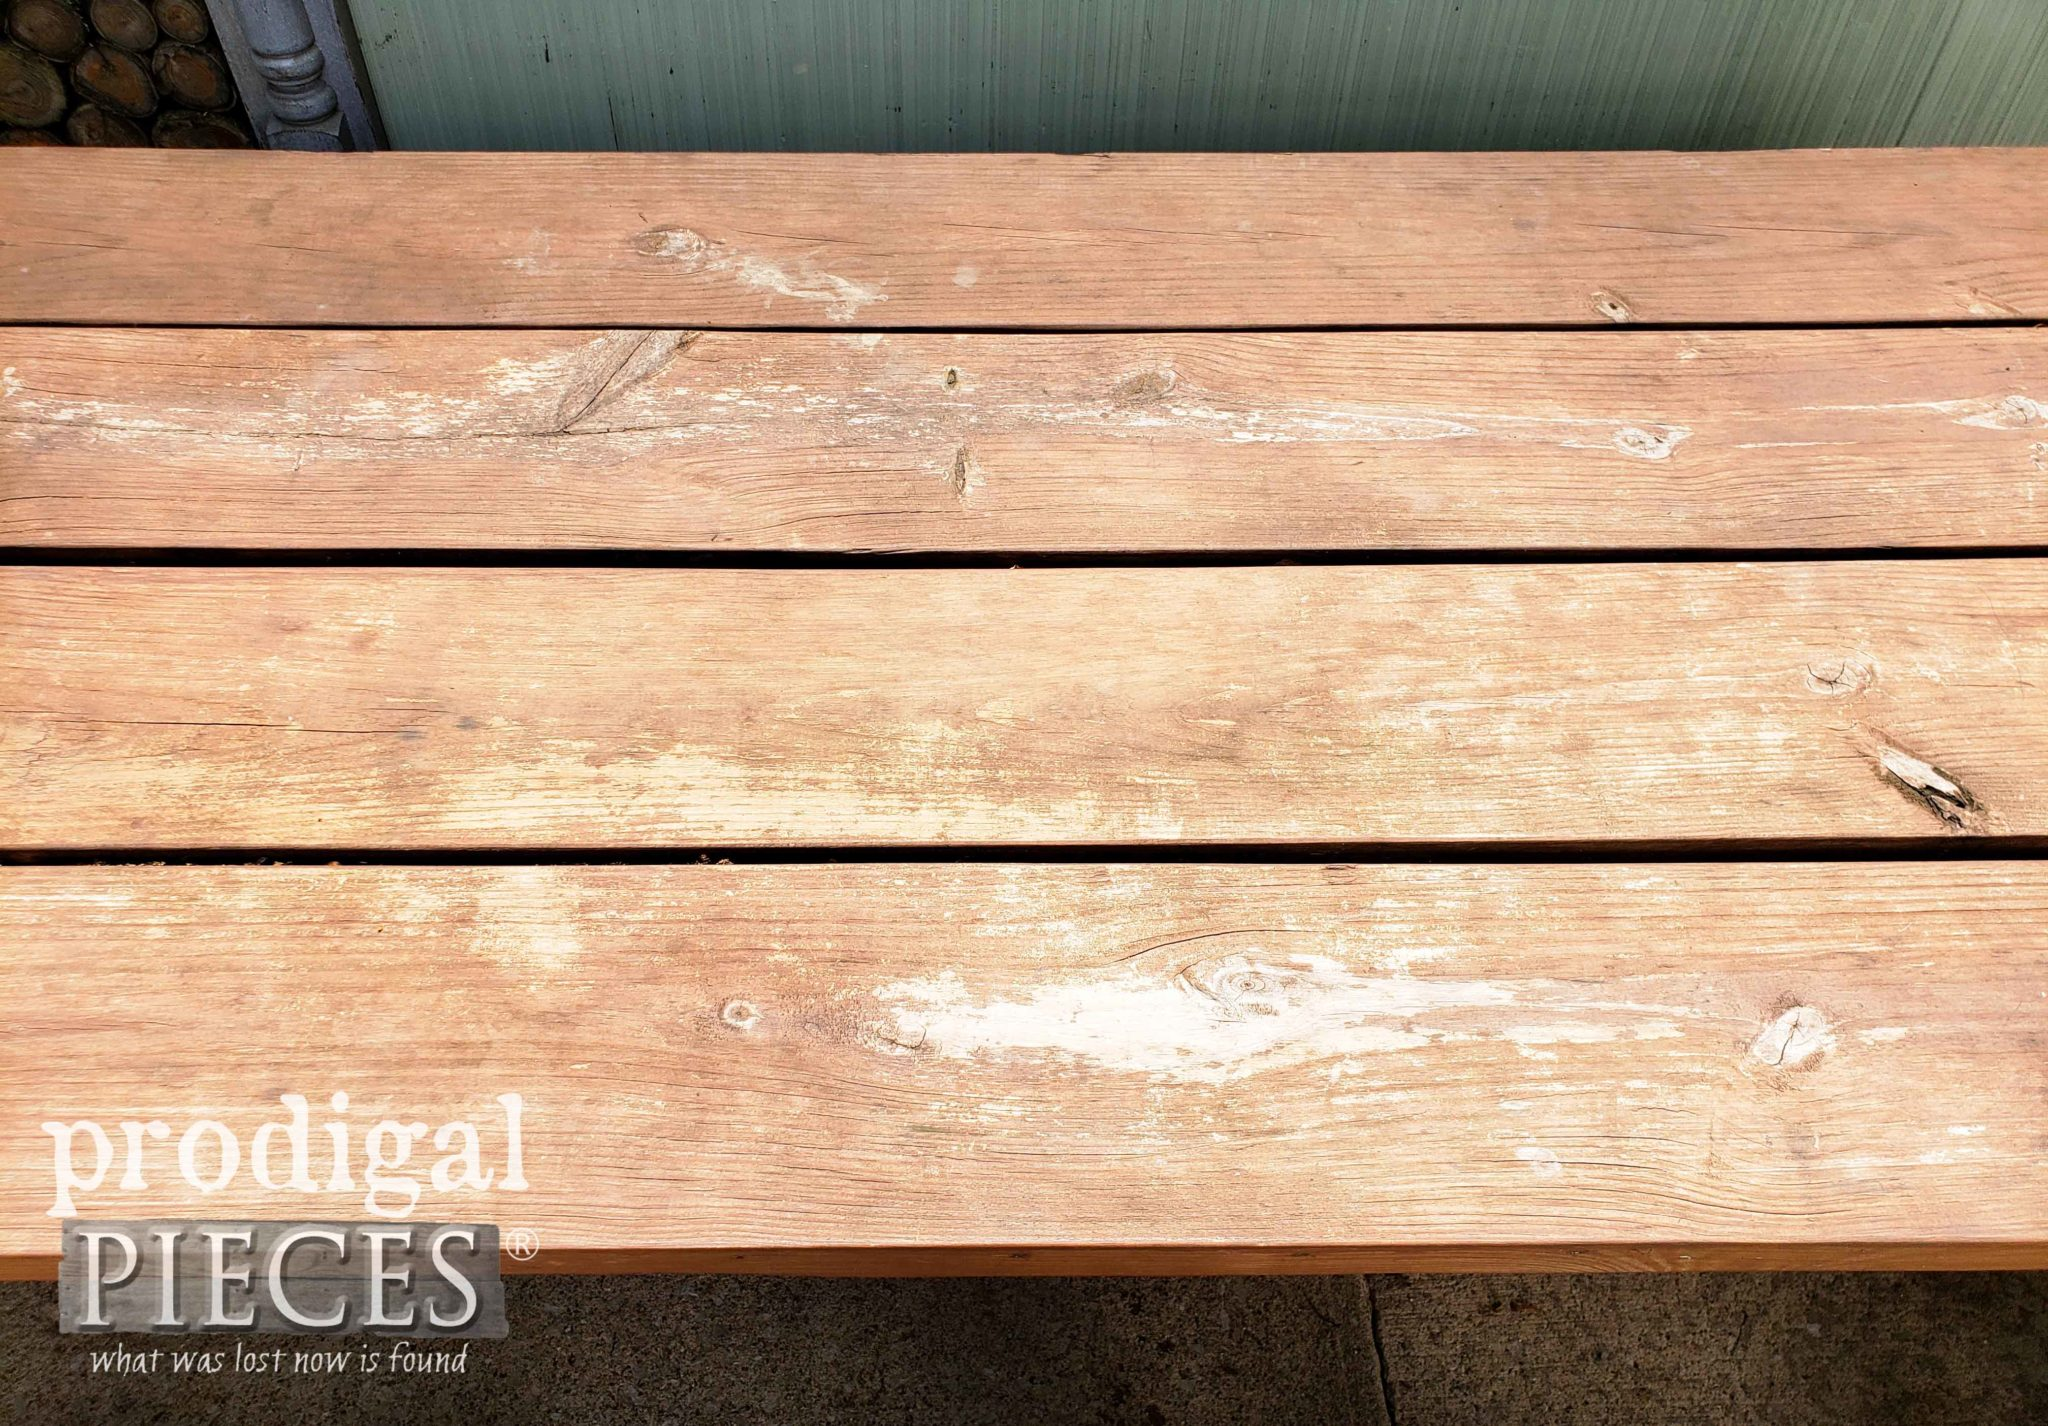 Worn Patio Table Top Before Update and Restoration by Larissa of Prodigal Pieces | prodigalpieces.com